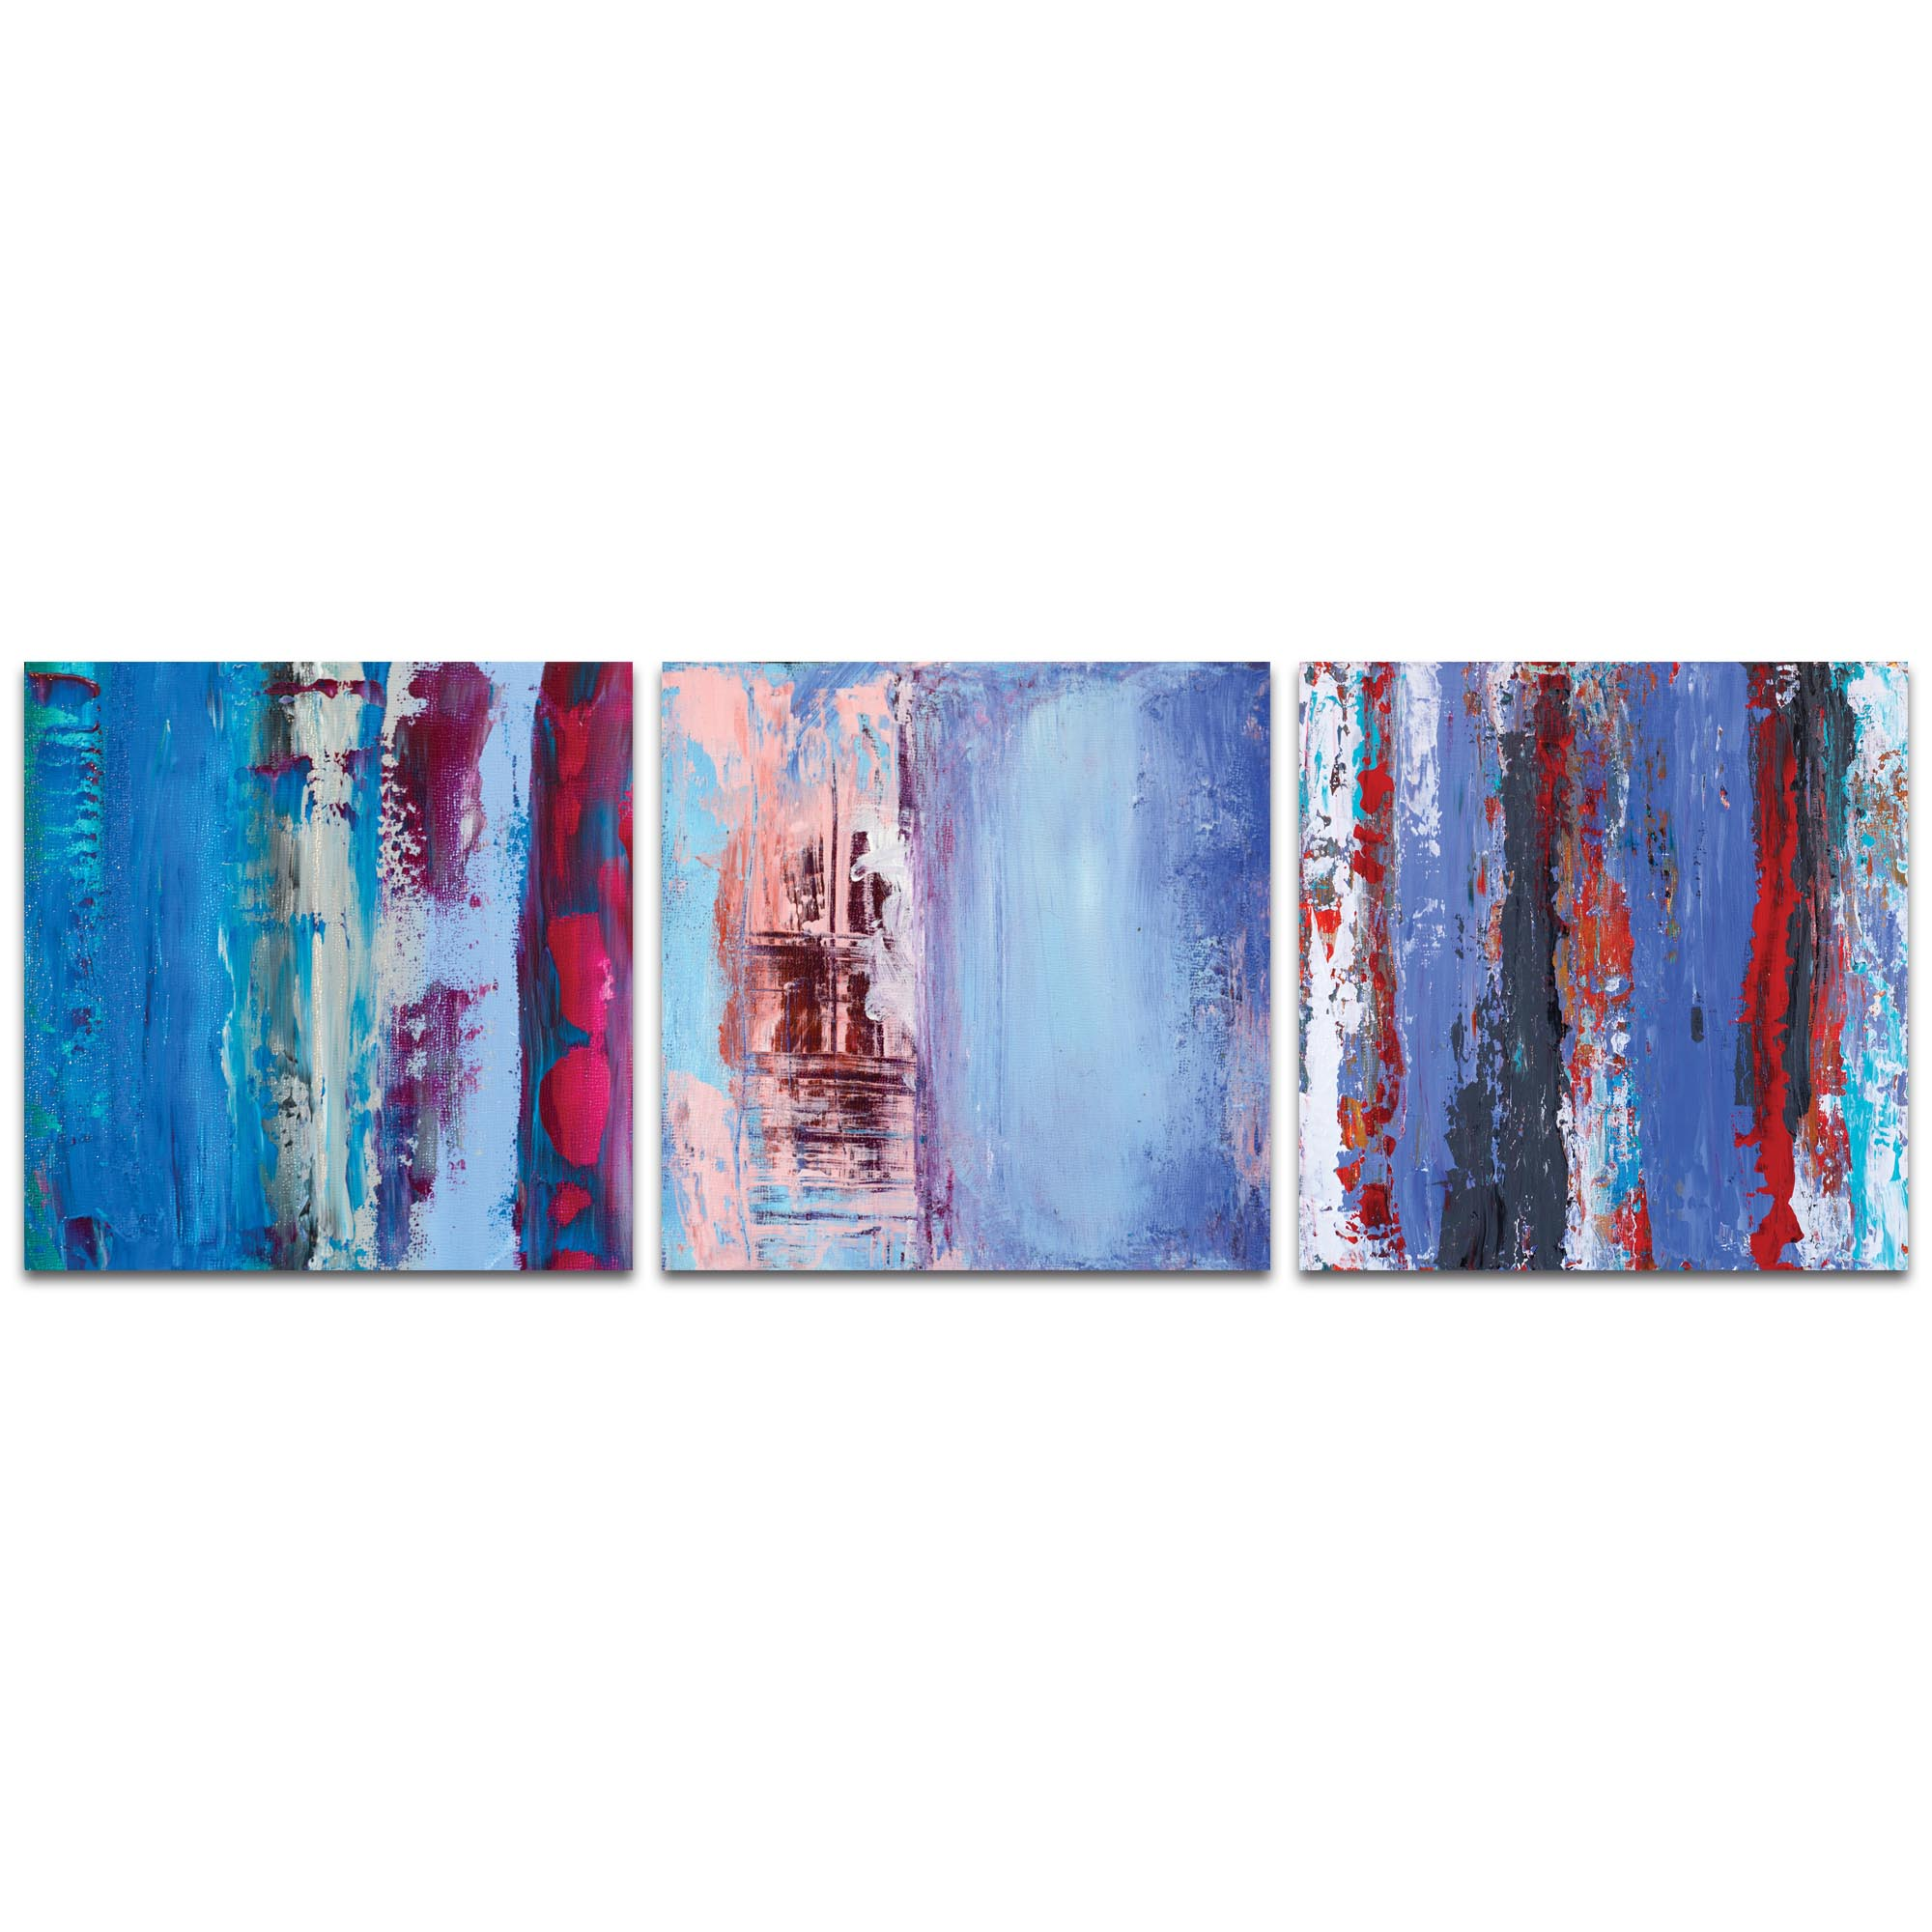 Abstract Wall Art 'Urban Triptych 1' - Urban Decor on Metal or Plexiglass